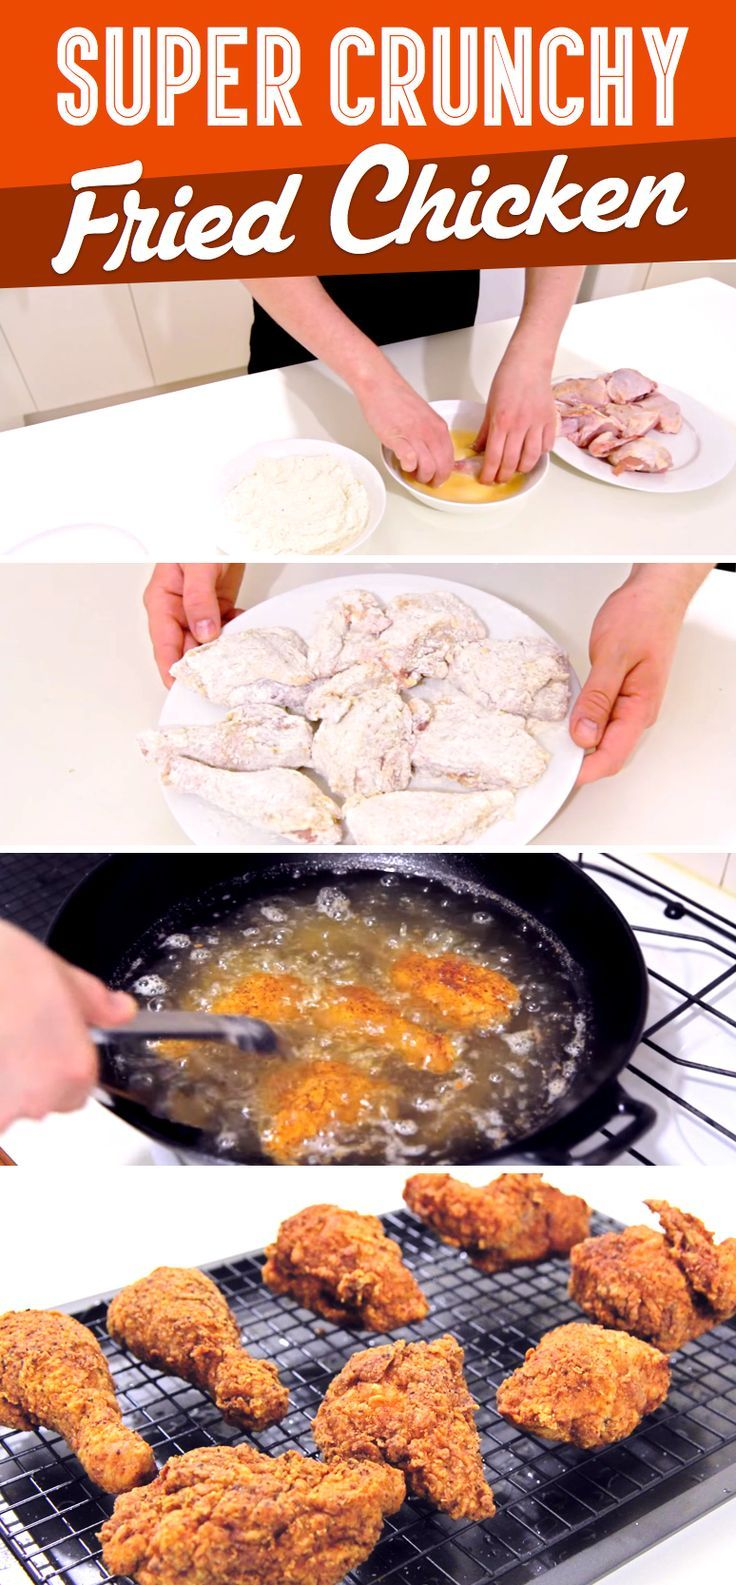 Homemade extra crispy fried chicken! Perfect for your next family dinner.